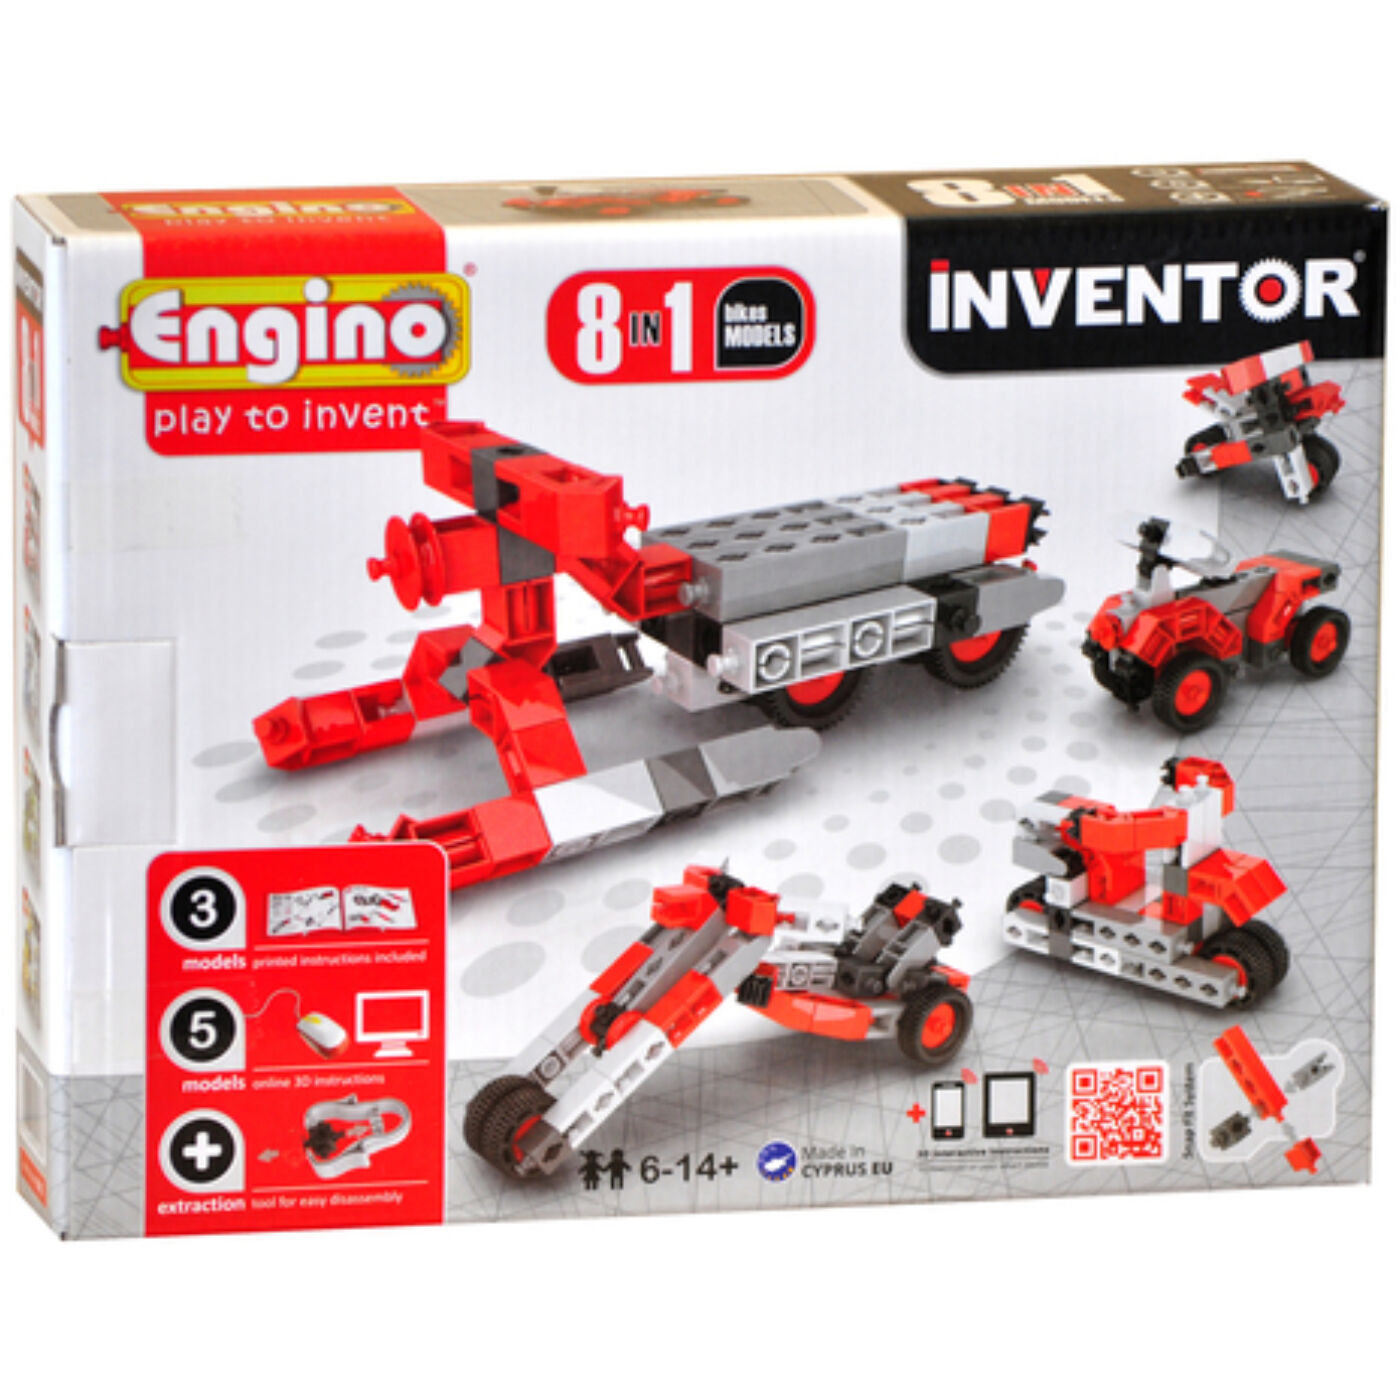 Engino Inventor motorok 8in1